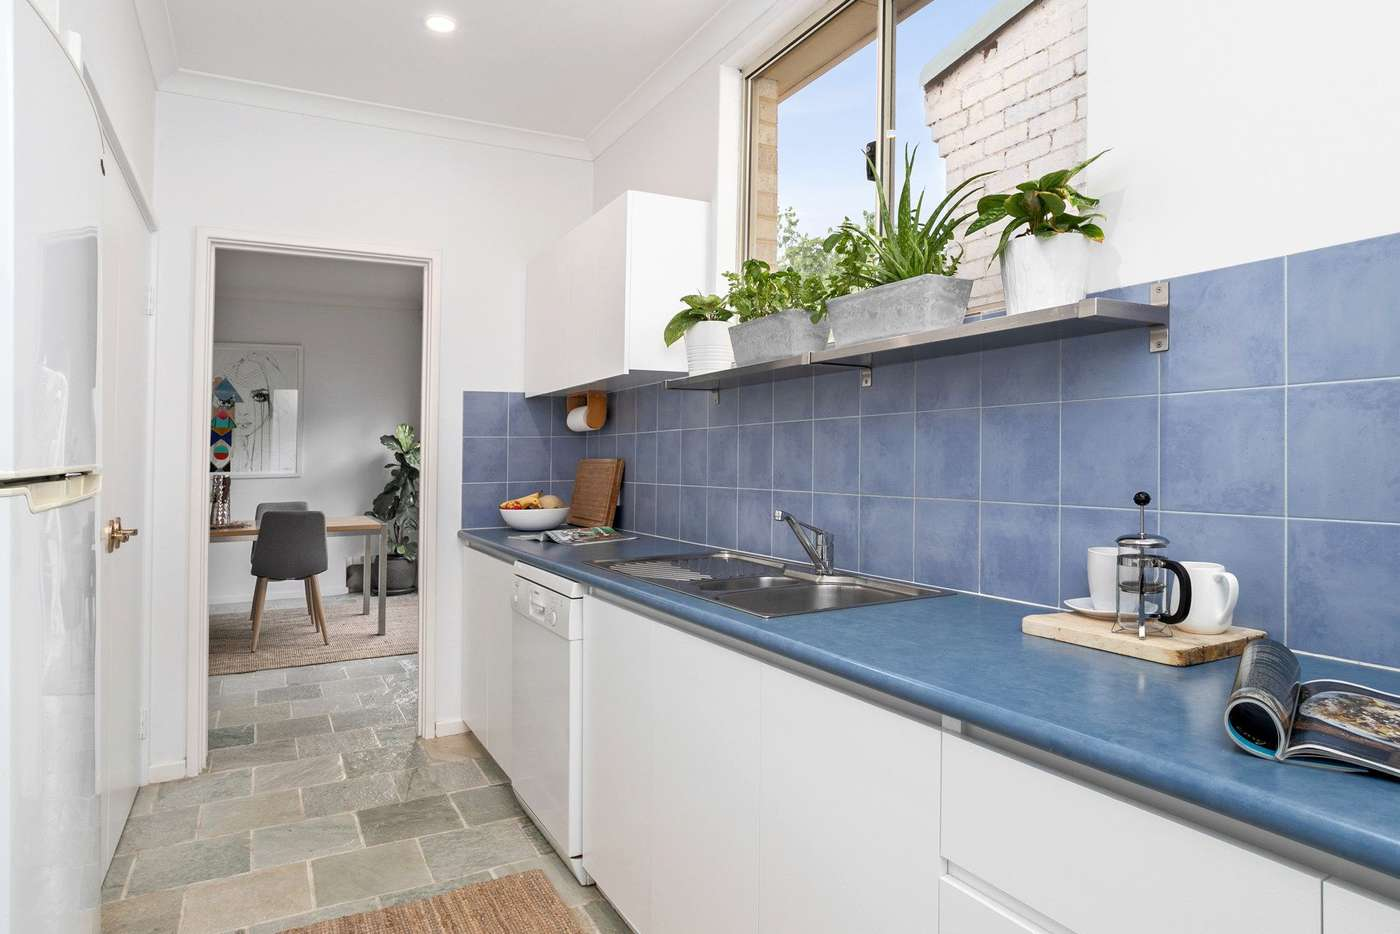 Fifth view of Homely house listing, 50 Yilgarn Street, Shenton Park WA 6008